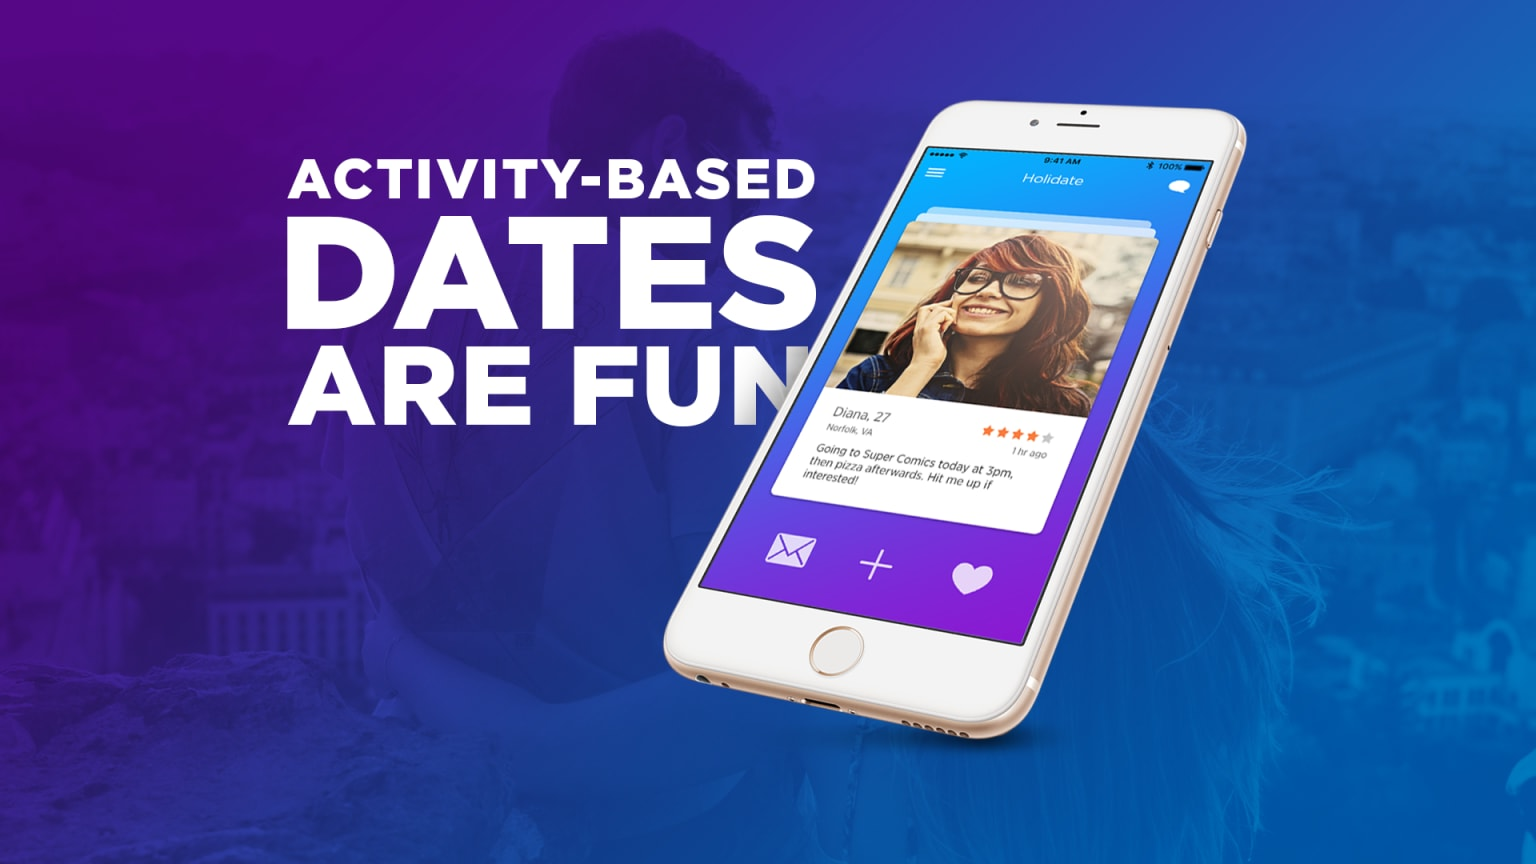 Holidate dating app (personal project)